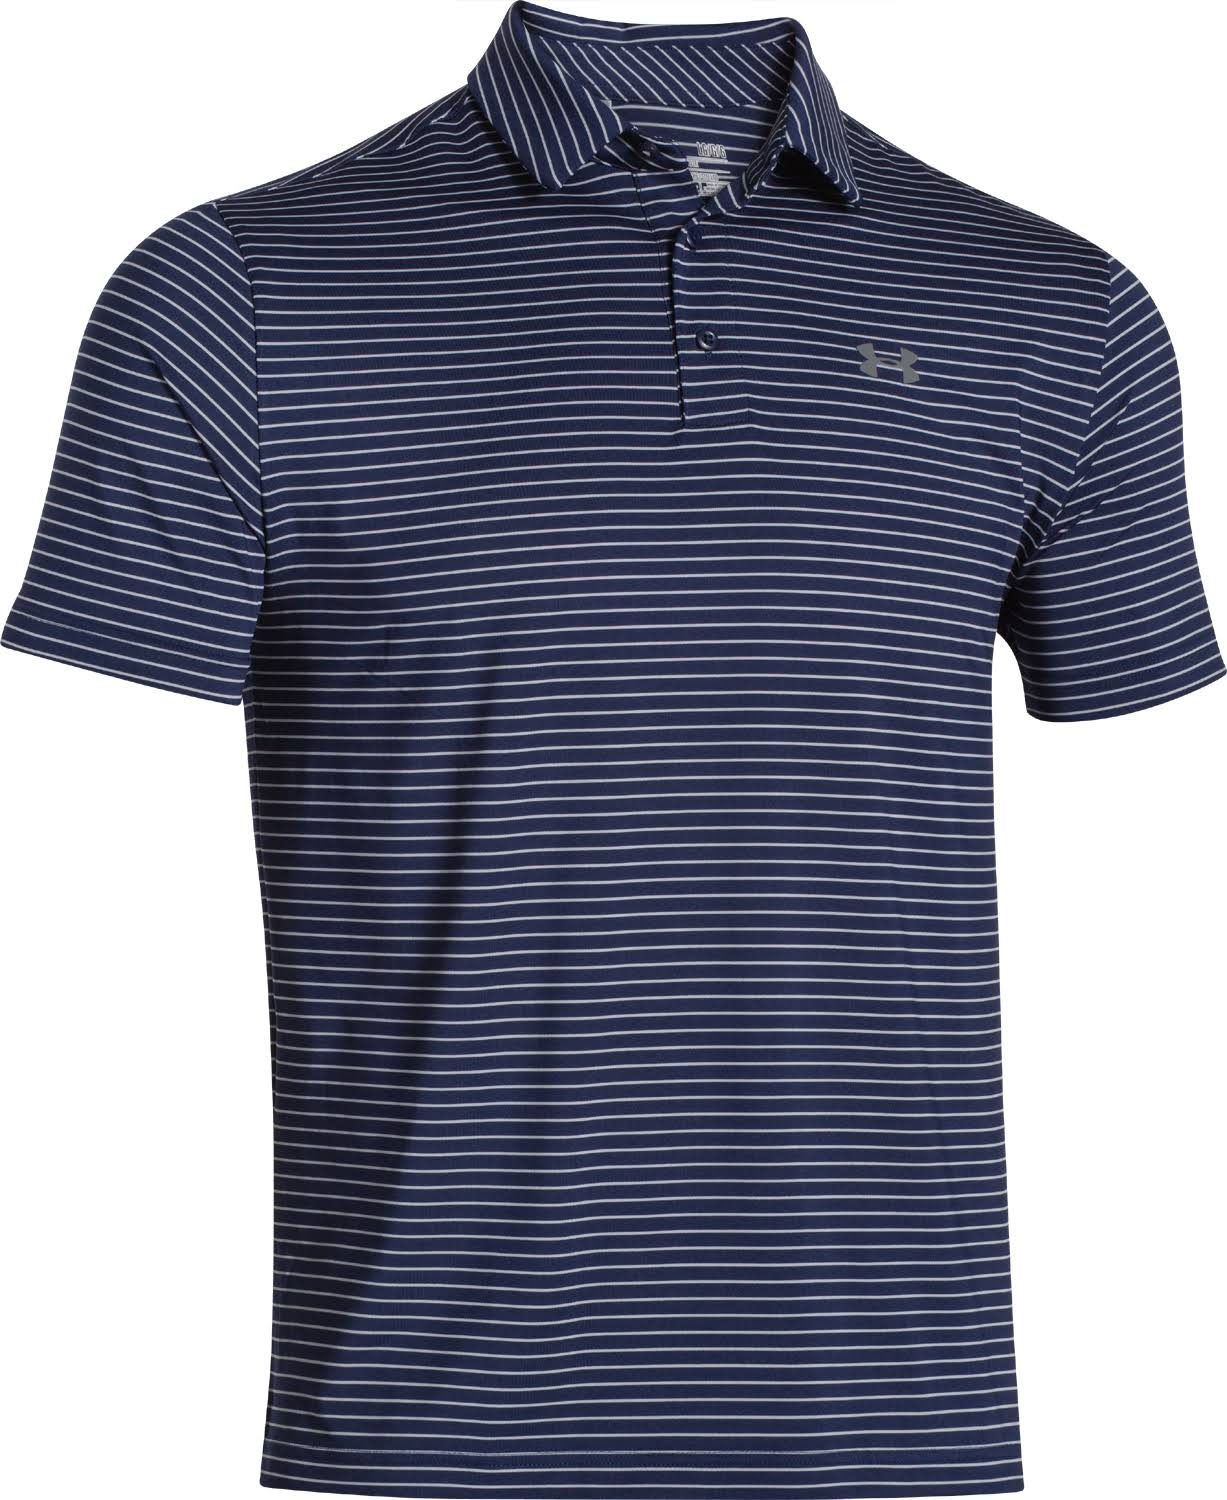 Marino Armour Stripe En Playoff Under xlarge Azul Polo Heather 6wBTBdq8